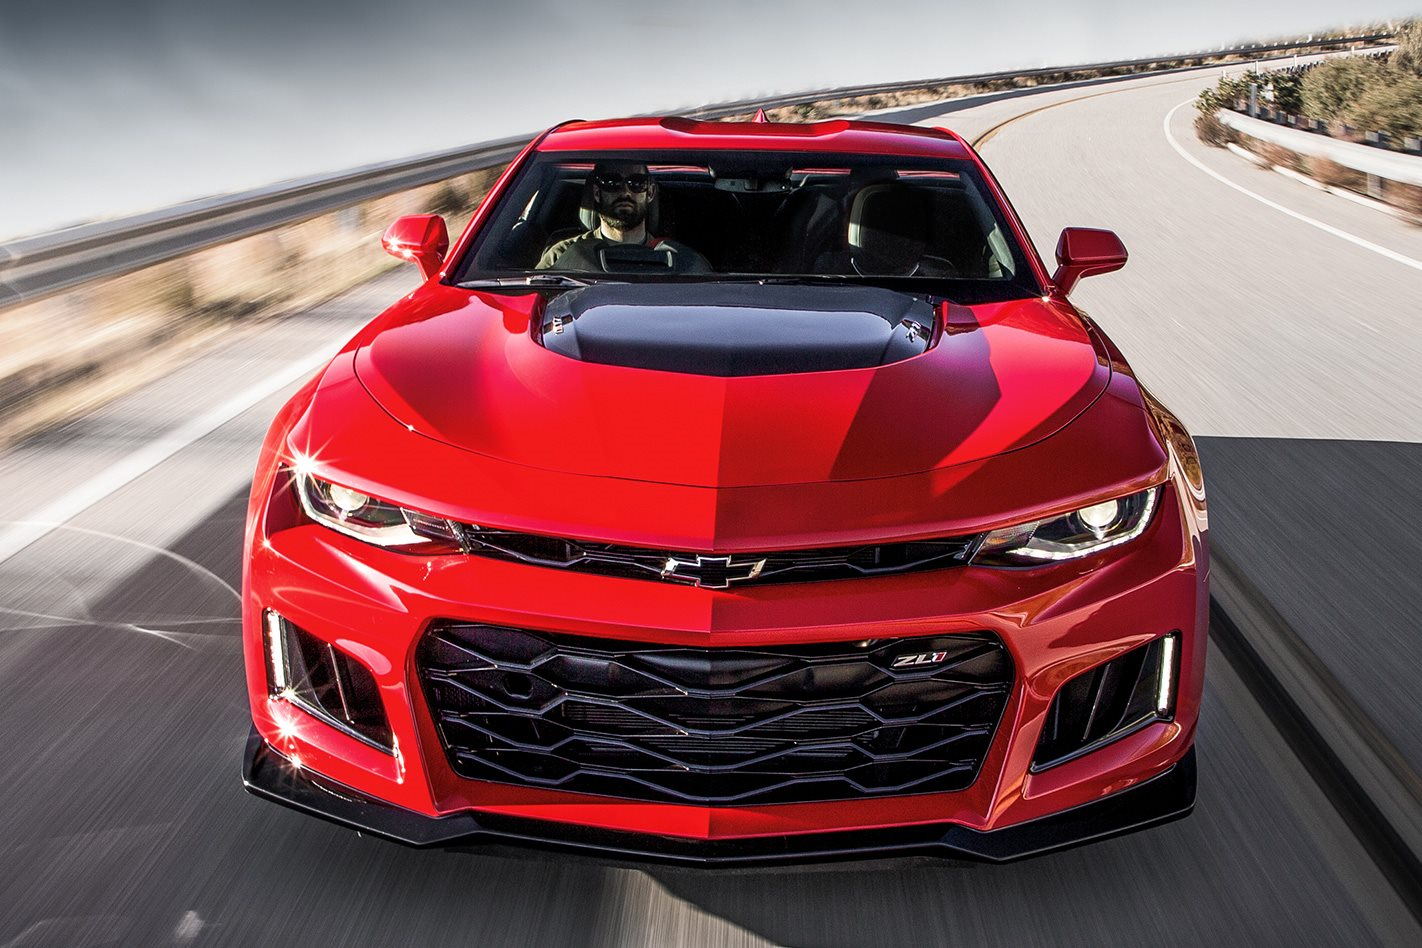 Chevrolet Camaro coming to Australia